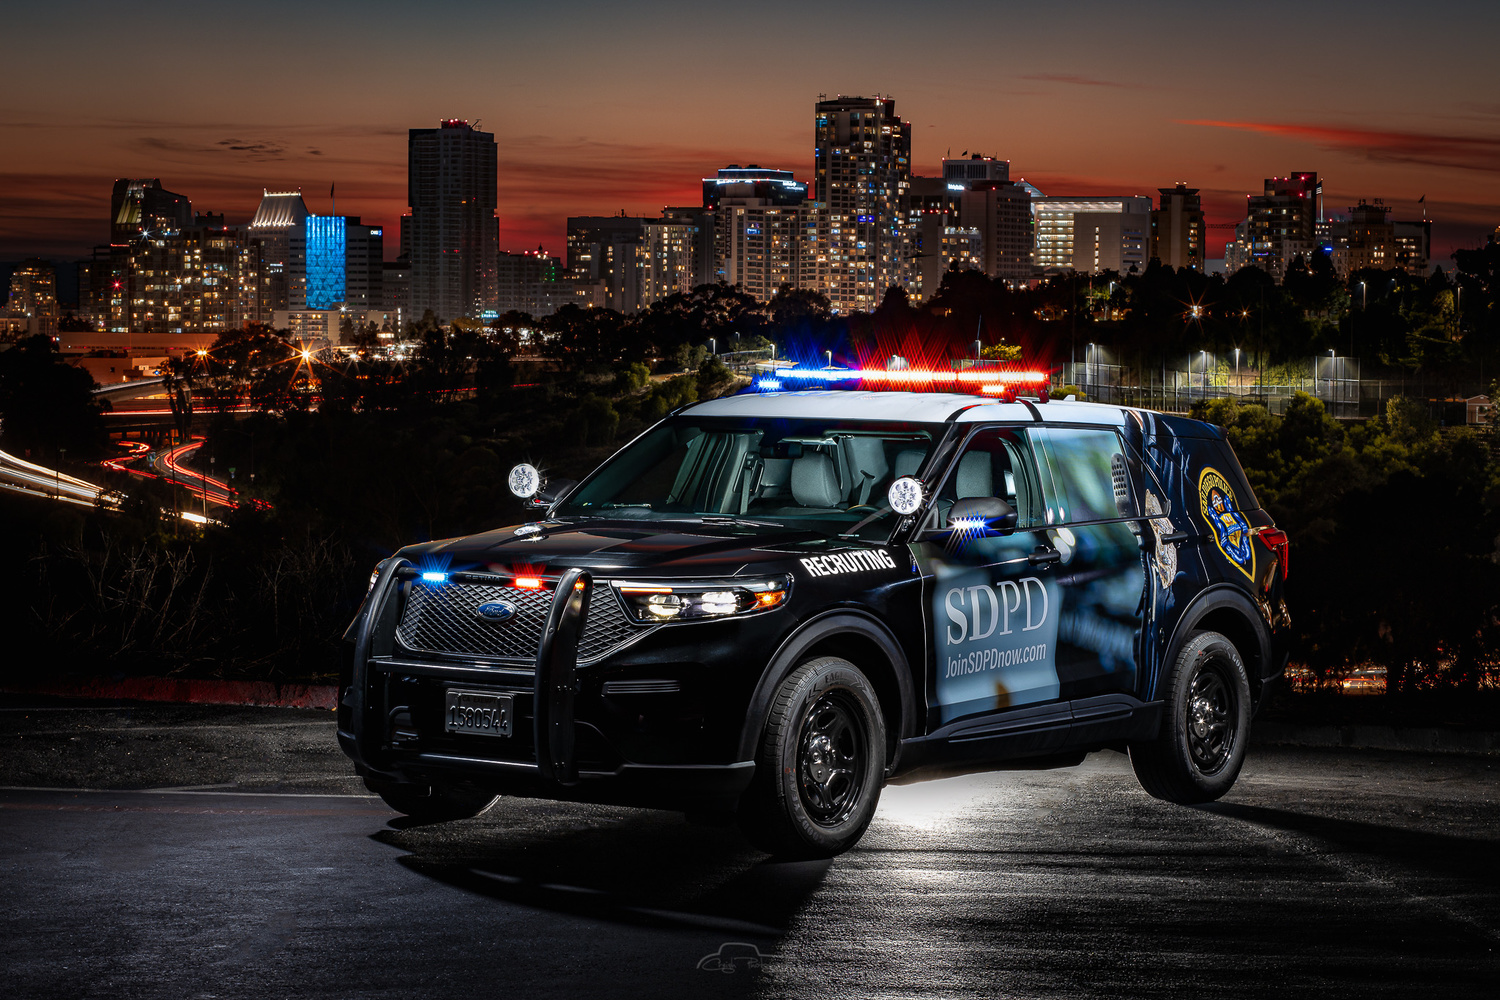 San Diego Police Recruiting by Creigh McIntyre